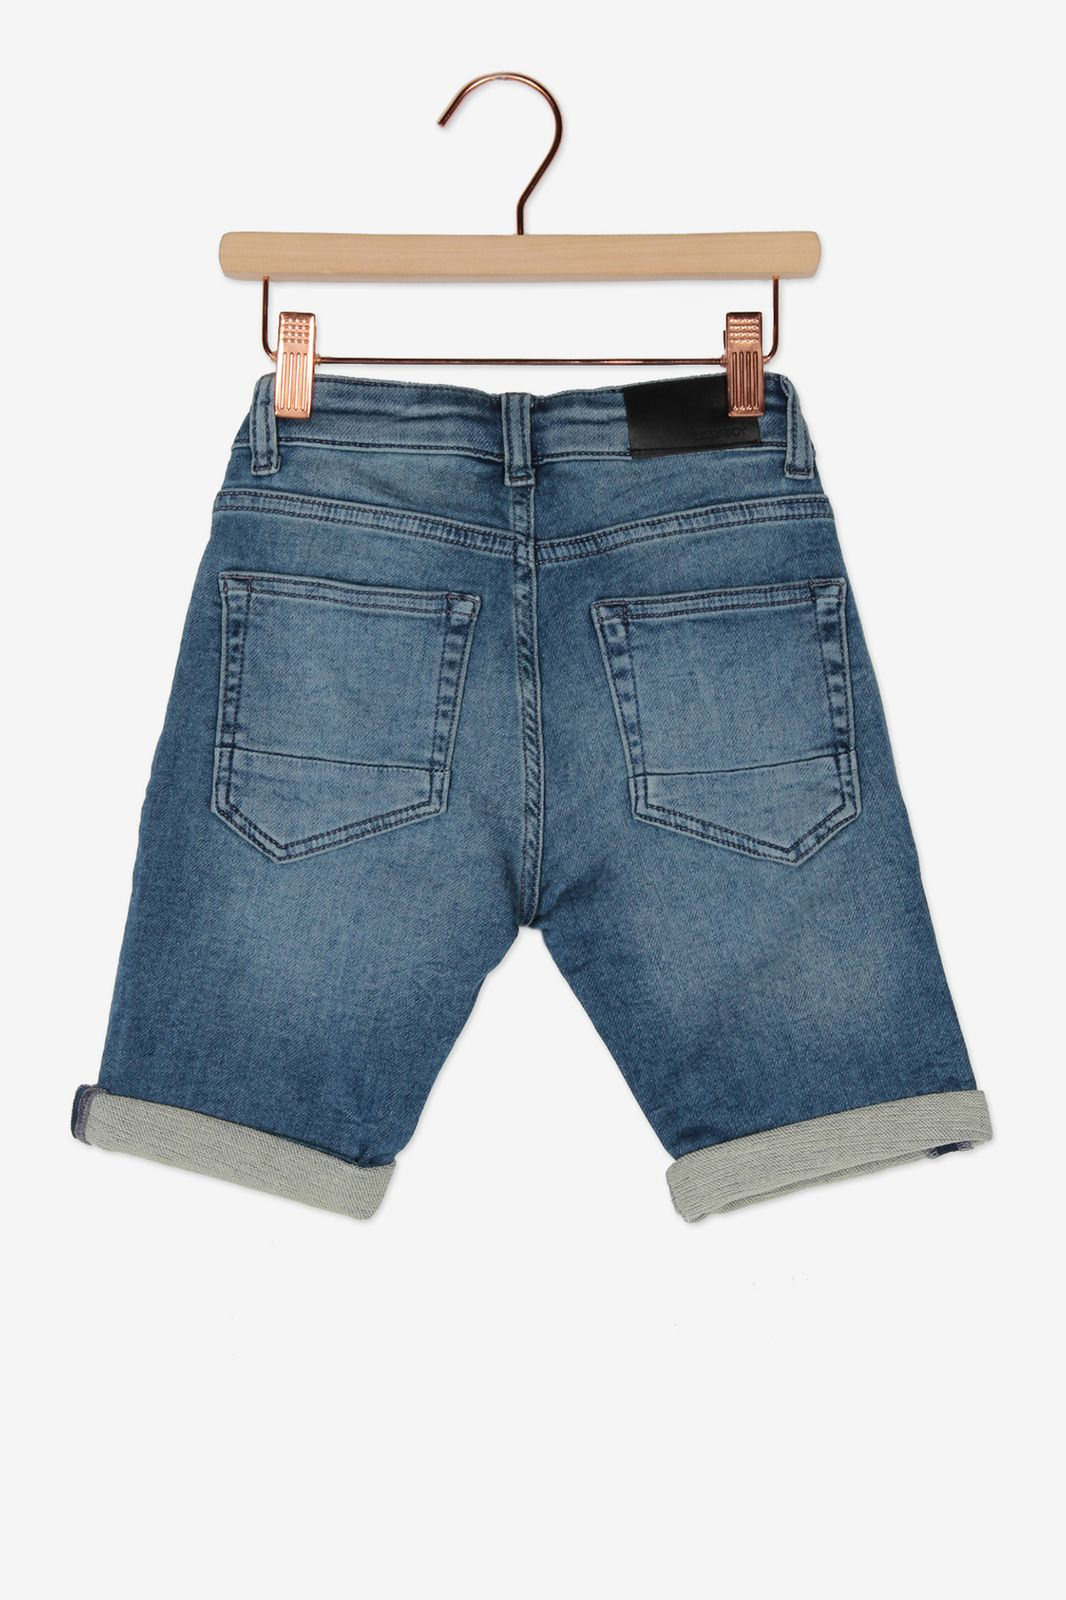 Strech denim short